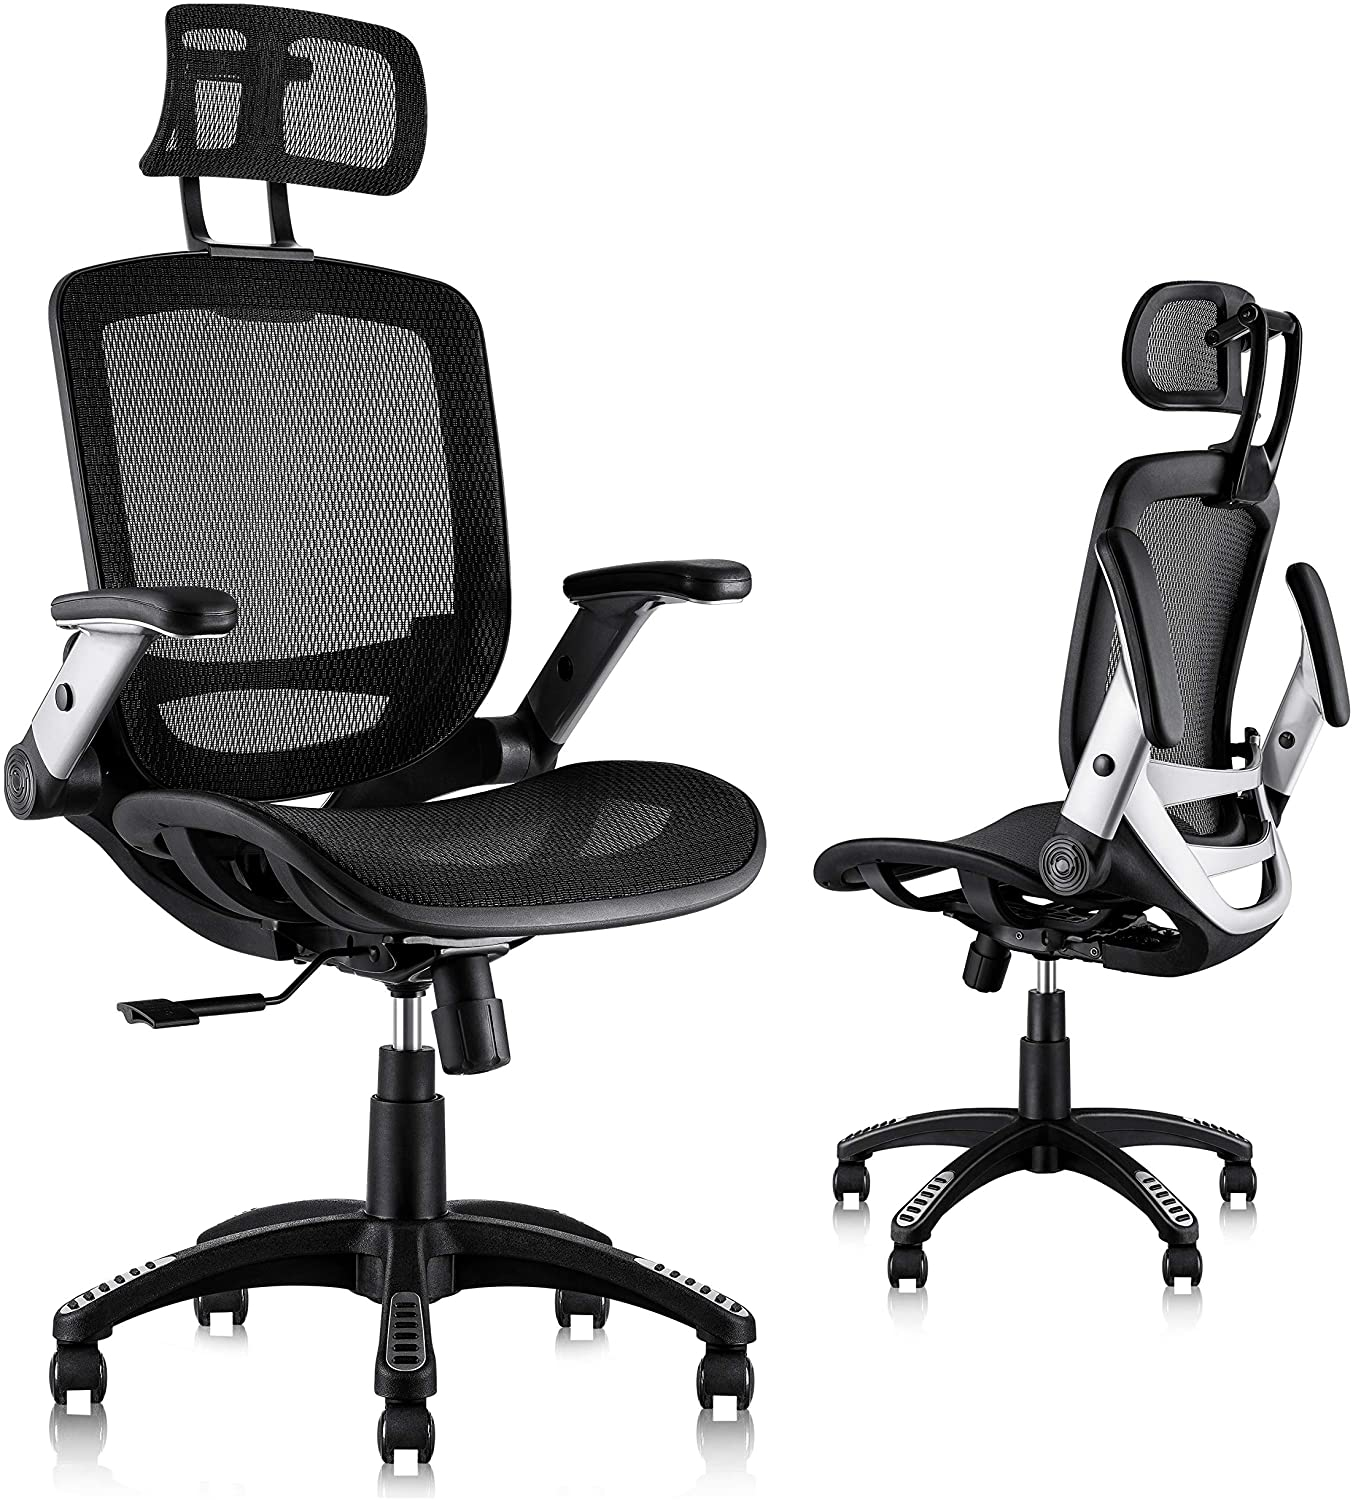 Buy Gabrylly Ergonomic Mesh Office Chair, High Back Desk Chair - Adjustable Headrest with Flip-Up Arms, Tilt Function, Lumbar Support and PU Wheels, Swivel Computer Task Chair Online in India. B08T251K4H